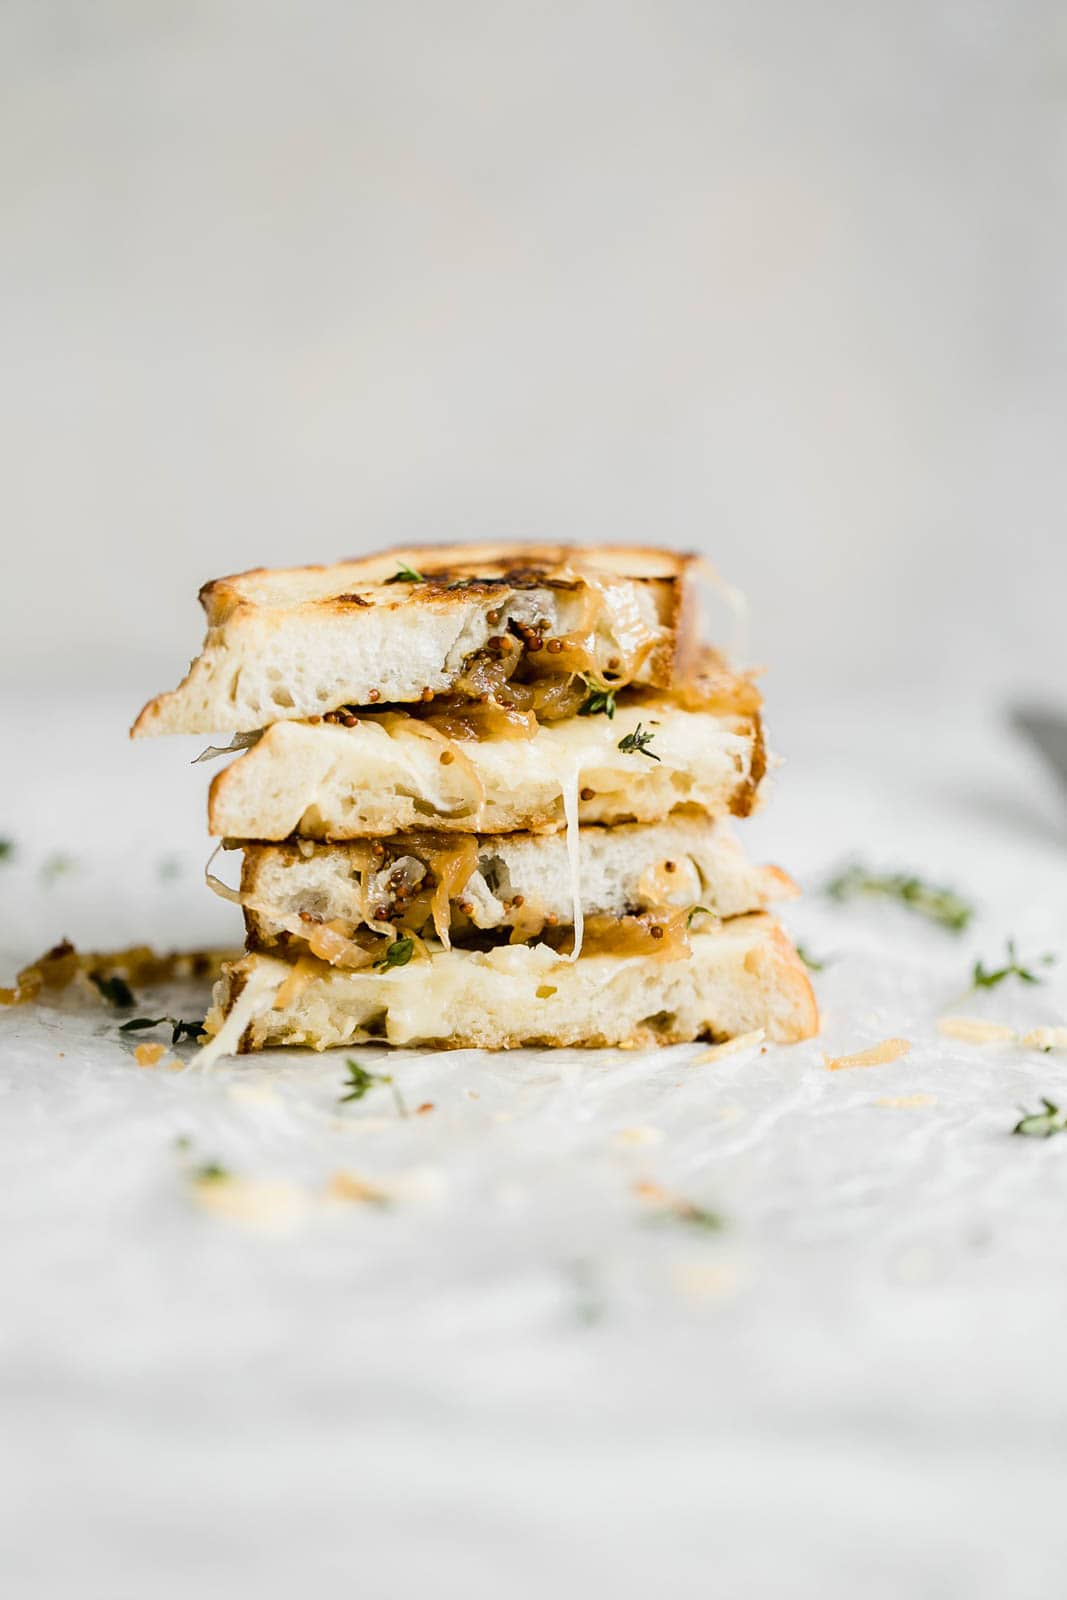 A Caramelized Onion, Whole Grain Mustard, and Gruyere Grilled Cheese perfect for spring. Just look at that gorgeous cheese pull!!!